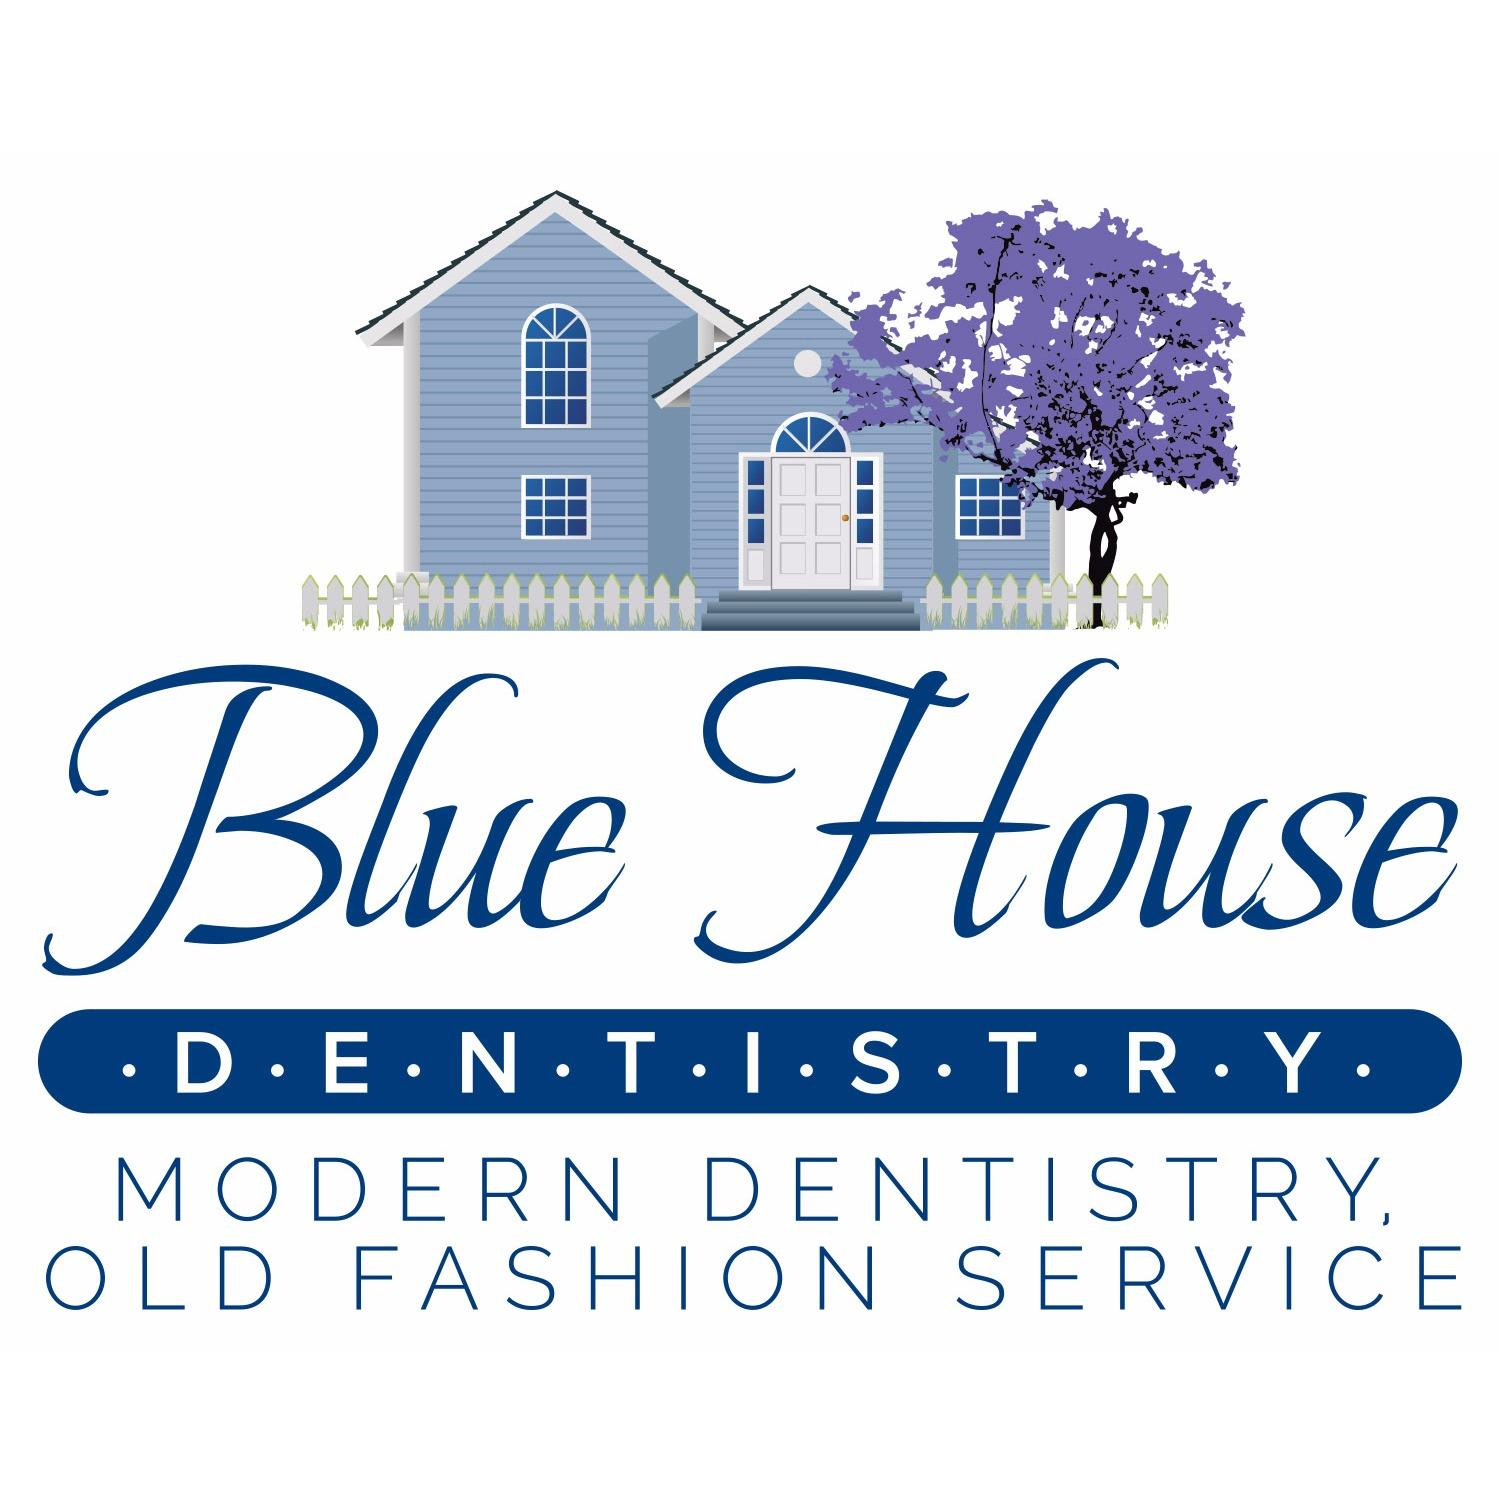 Blue House Dentistry image 6